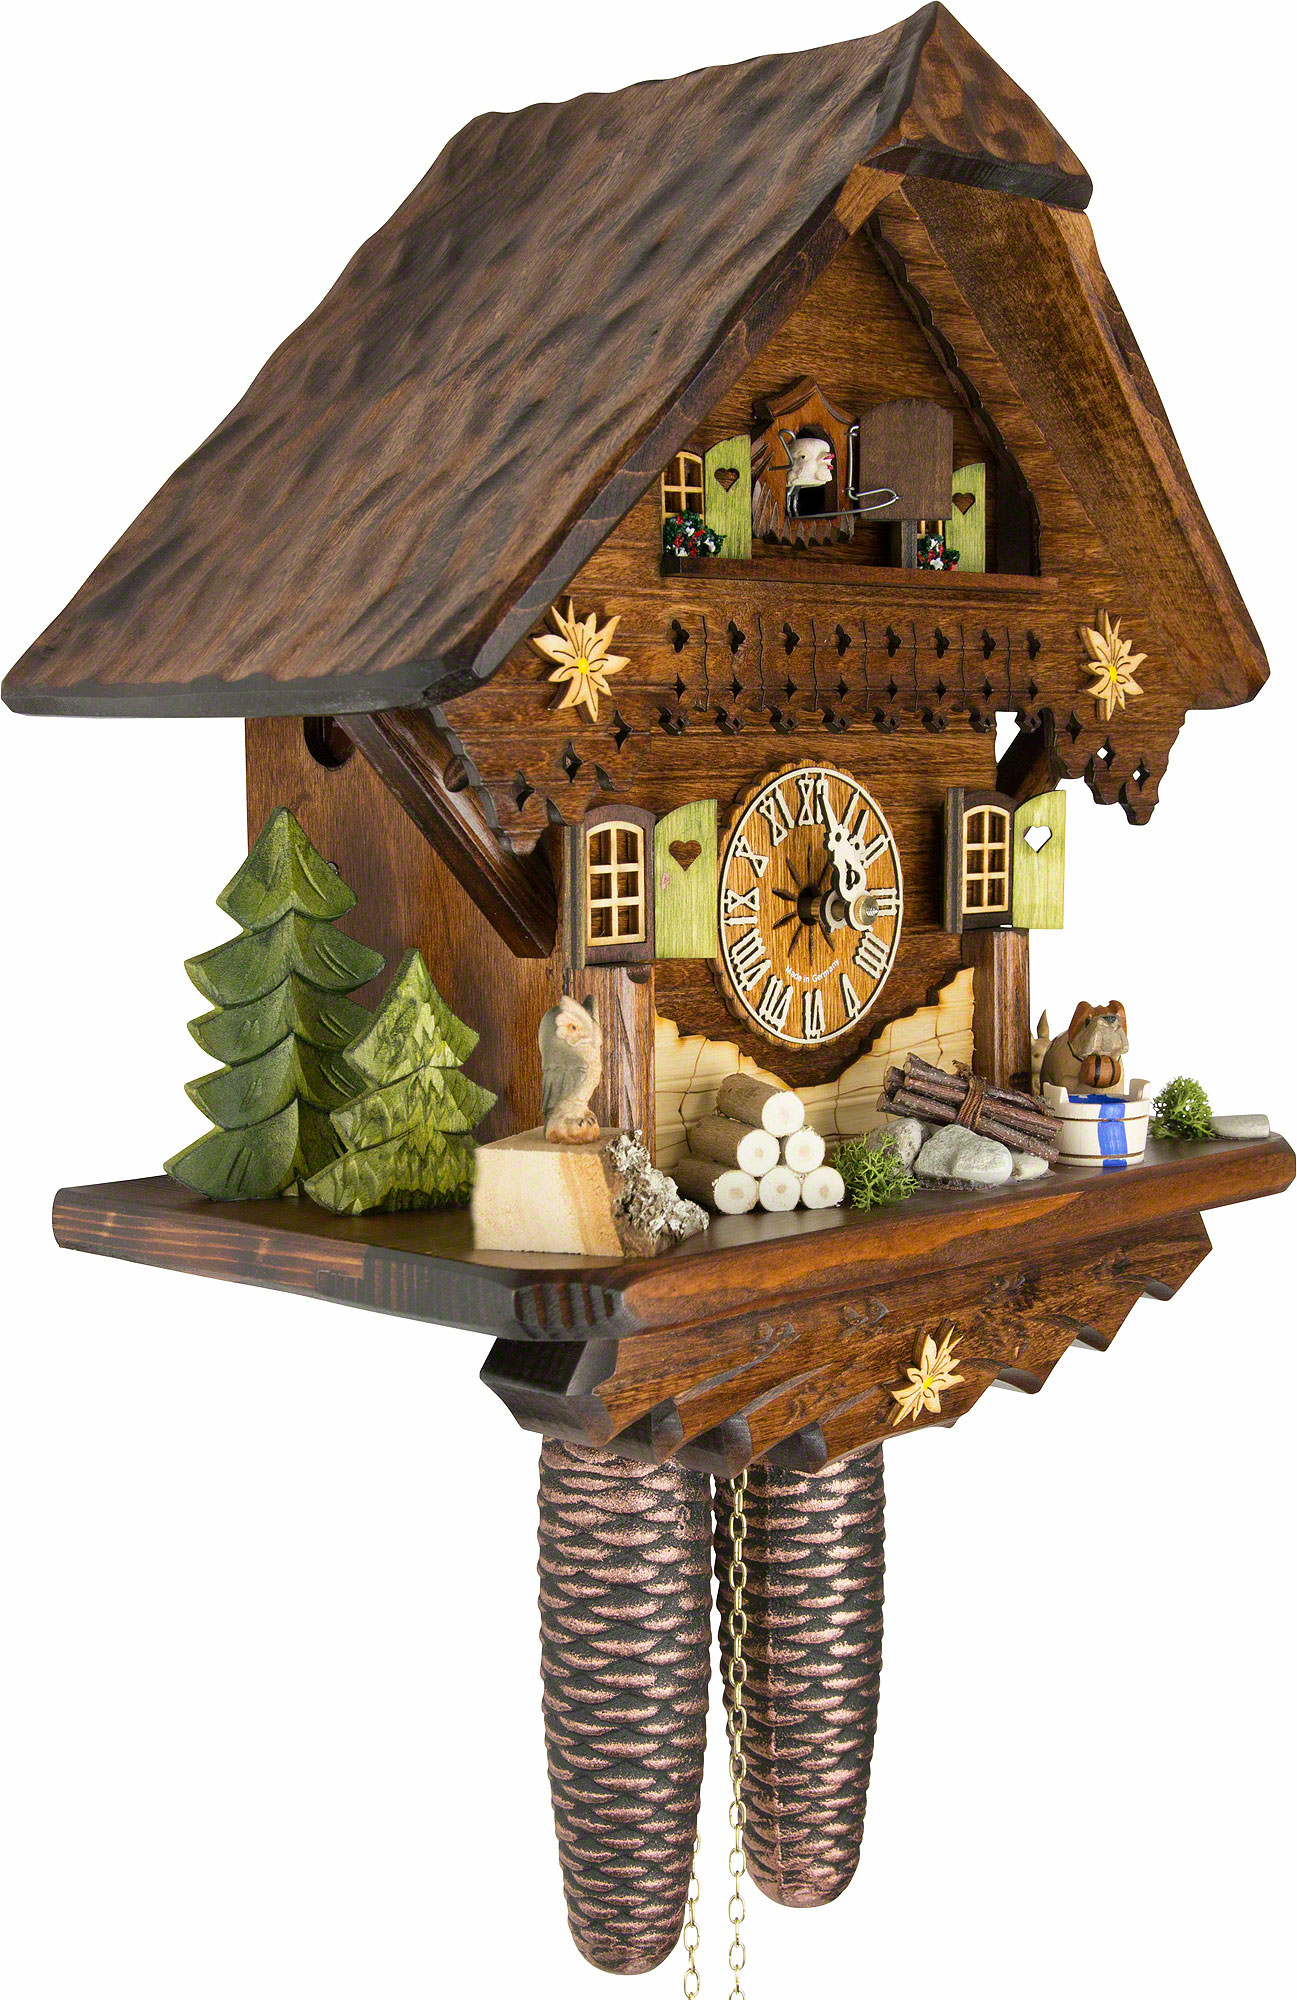 Cuckoo Clock 8 Day Movement Chalet Style 34cm By Cuckoo